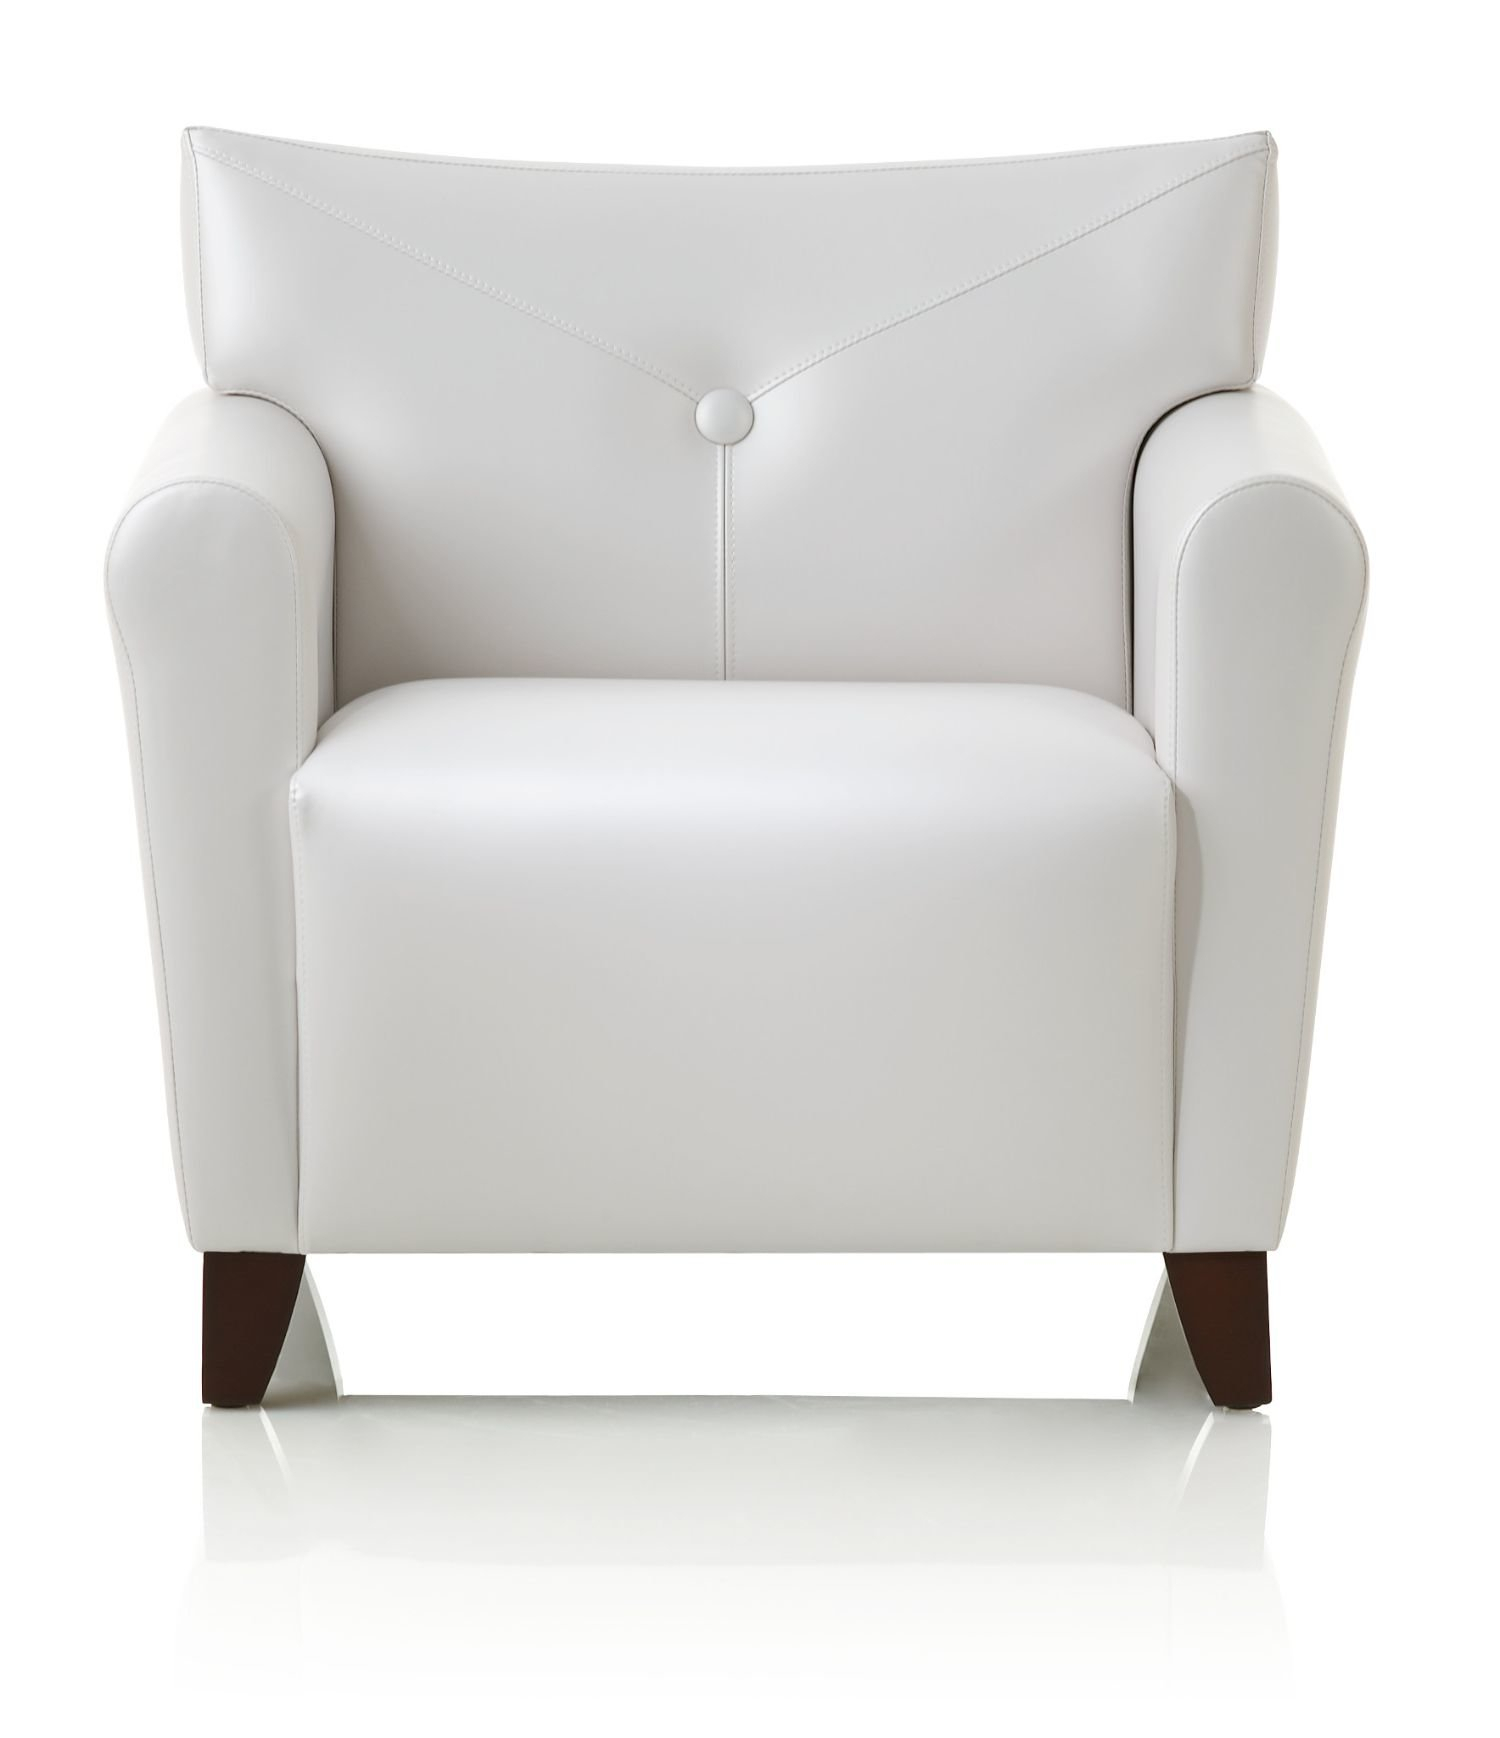 Ki Furniture Mesa™ Armchair | Wayfair Inside Mesa Foam Oversized Sofa Chairs (Image 10 of 25)